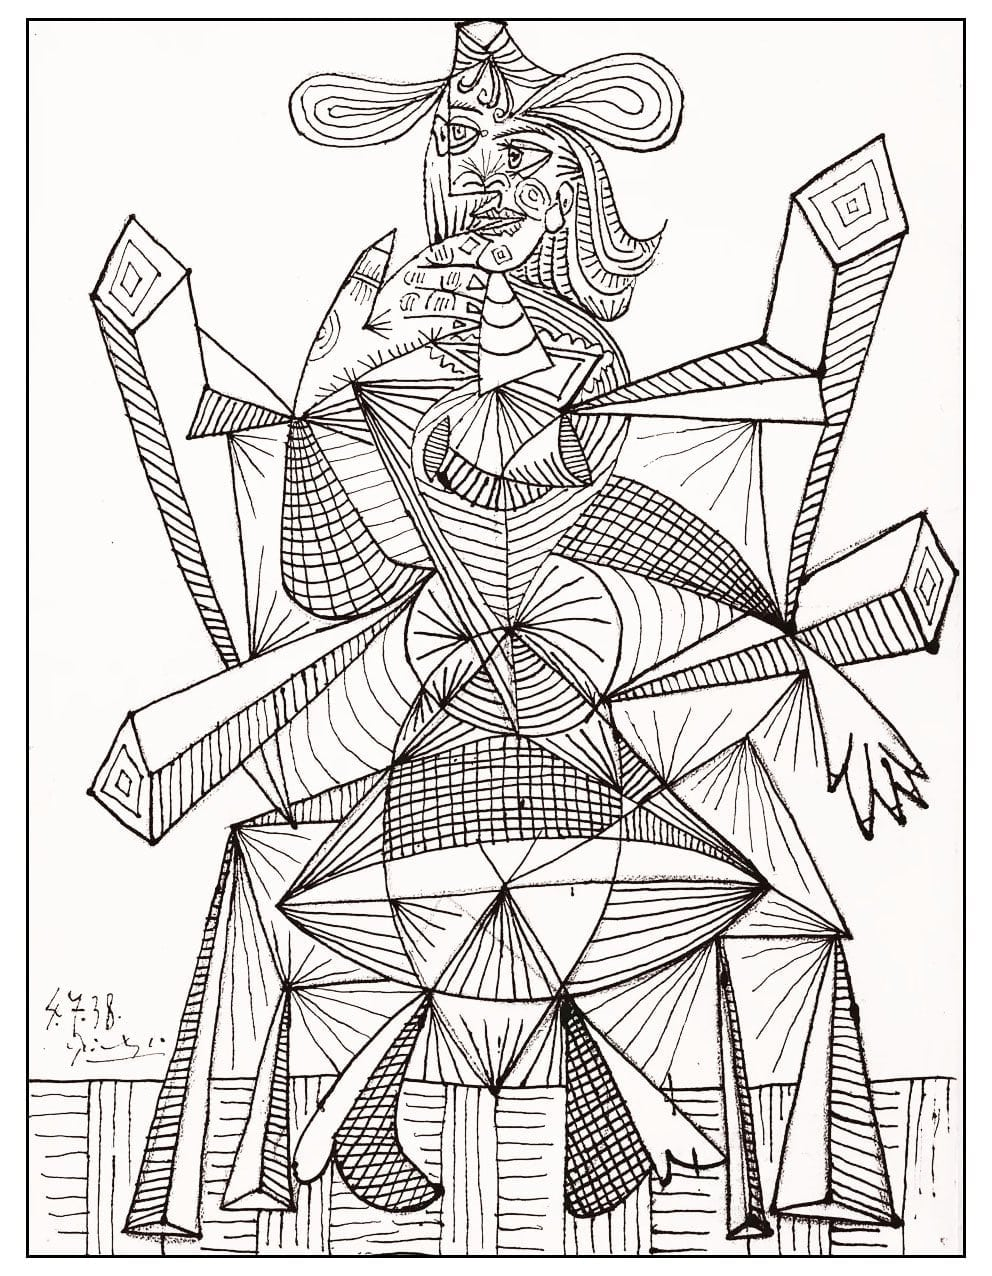 Drawing By Picasso 1938